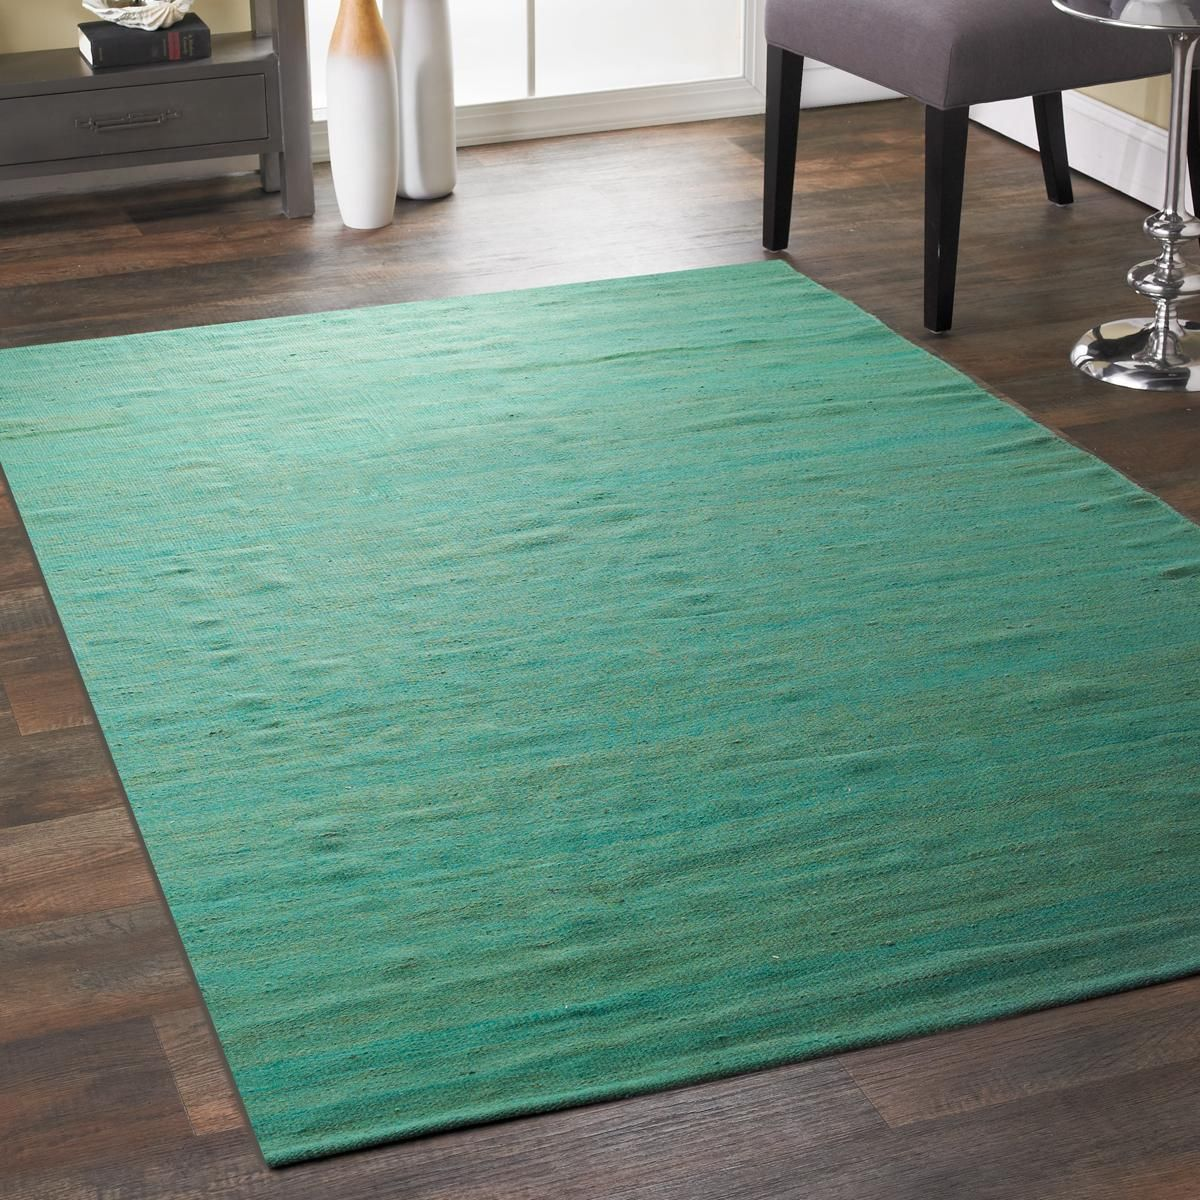 Striated Color Jute Flatweave Rugs Creating A Fashionable